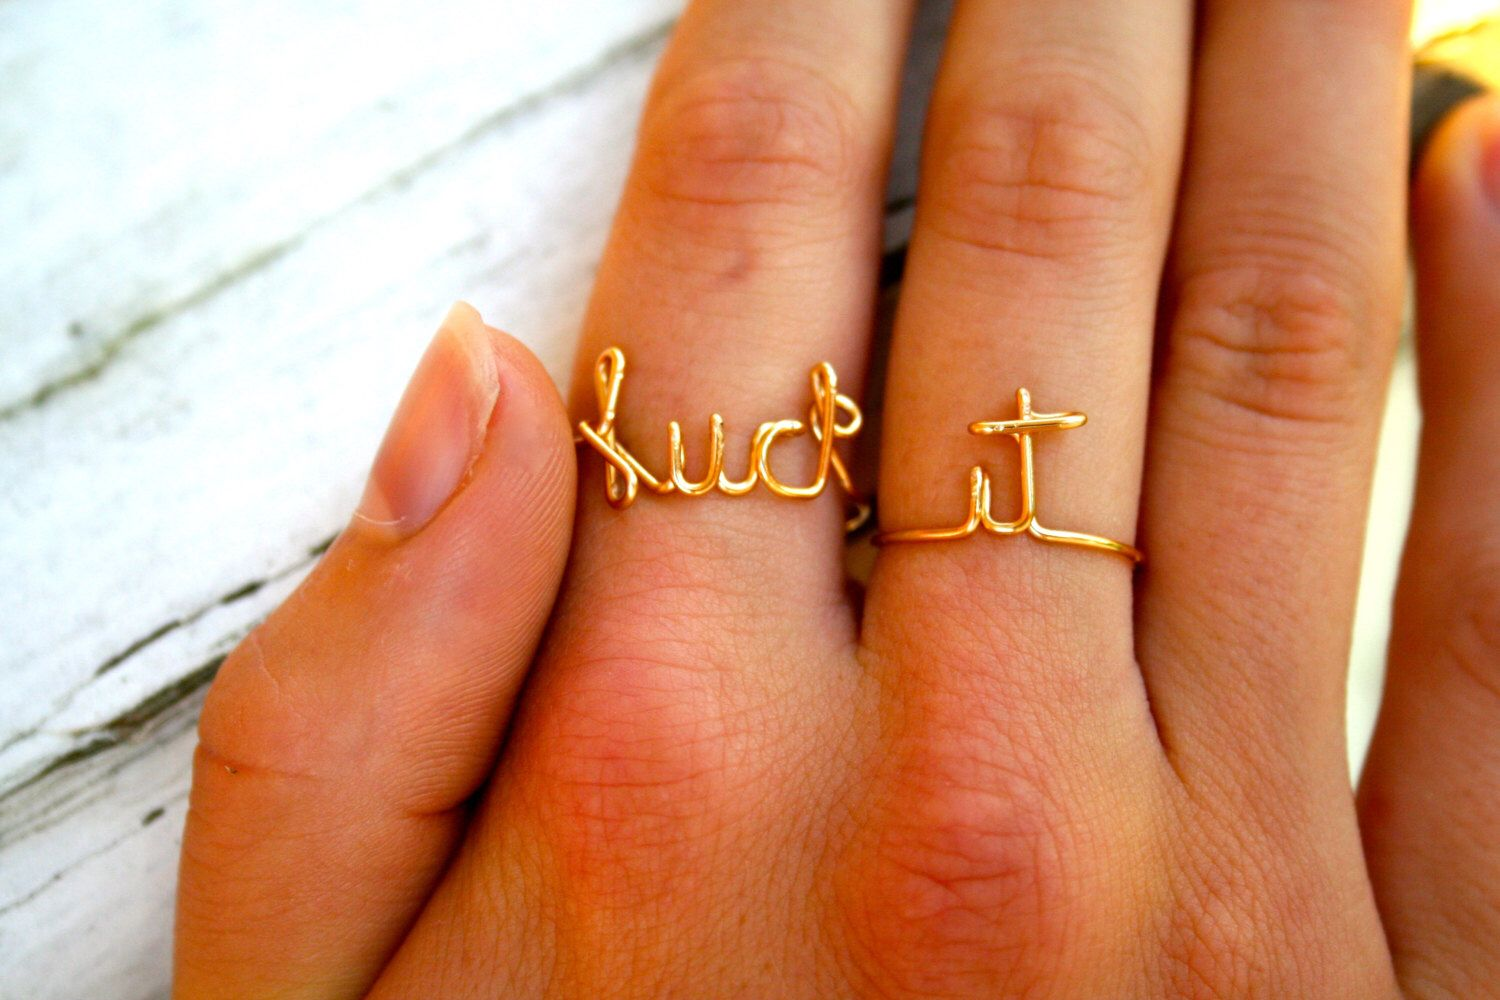 FUCK IT Ring - Silver, Rose Gold, Gold, Fuck ring set, Mature ...